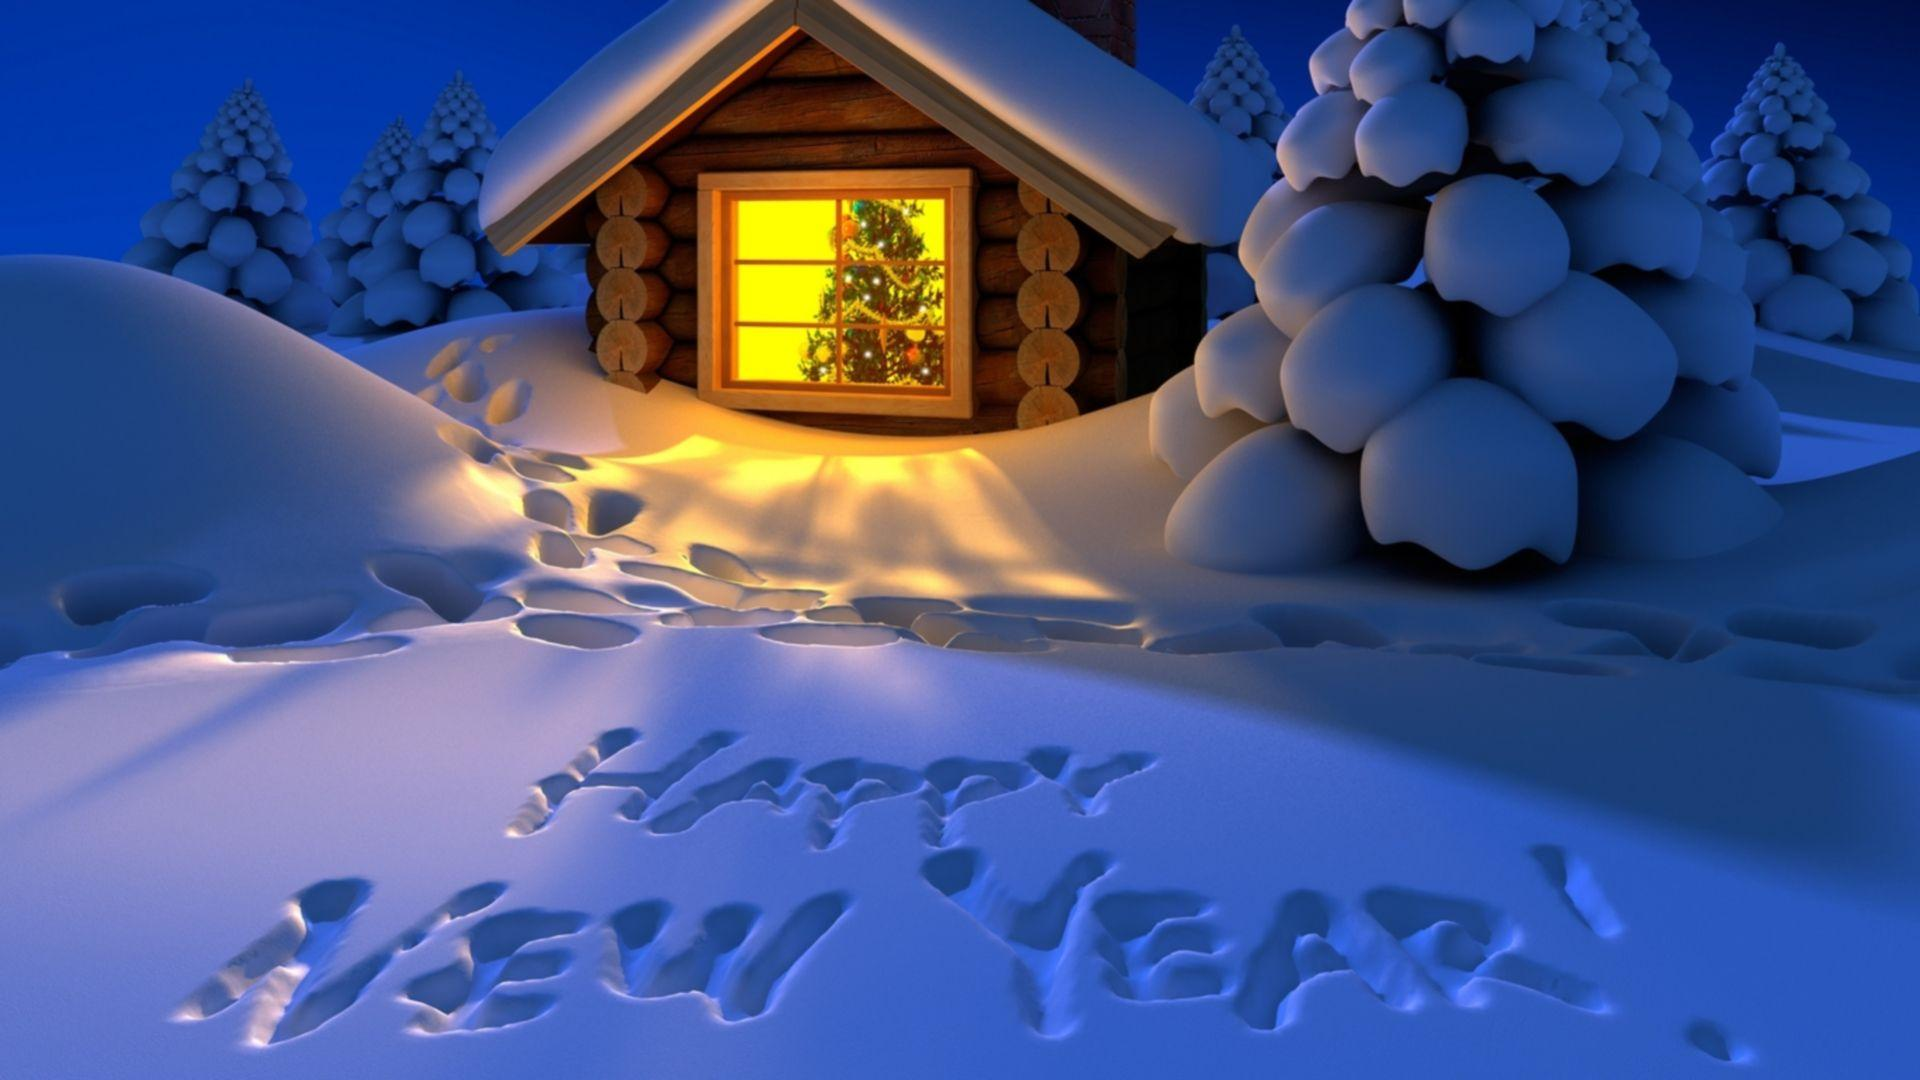 new year wallpapers 2015 happy new year 2015